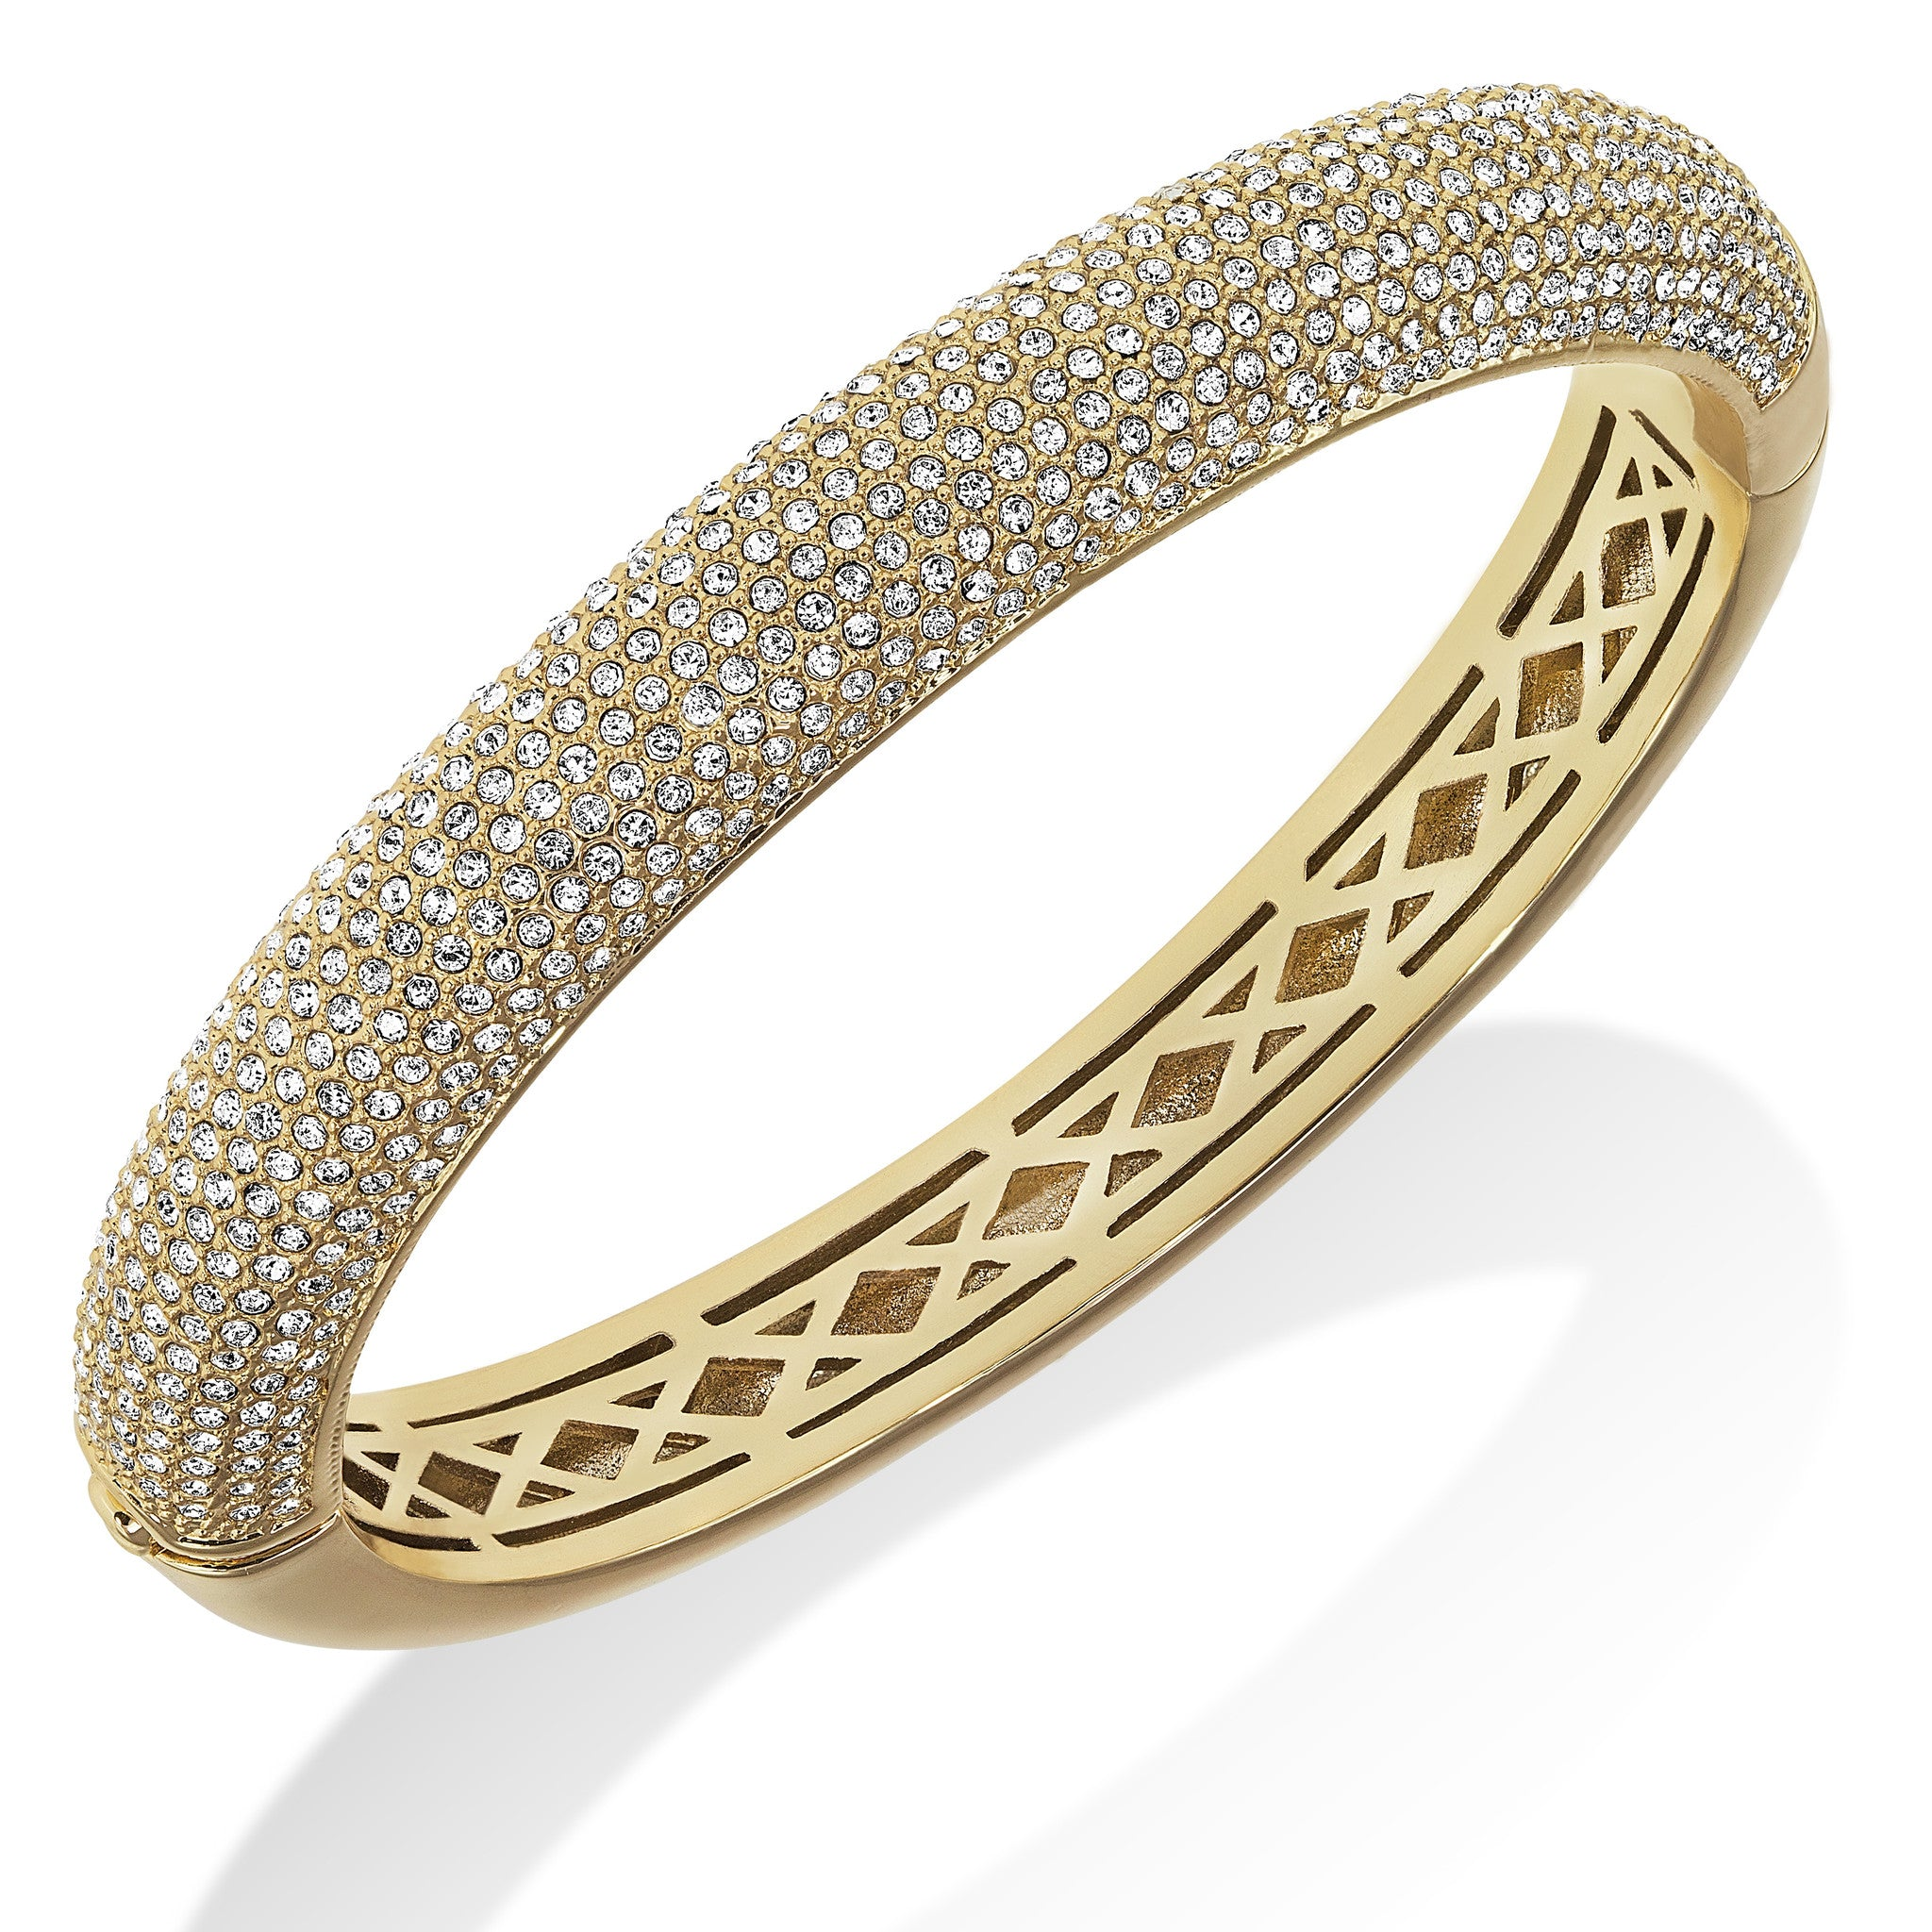 id bar three belluni hulchi copy moveable products bracelet of fidget diamond with ww stackable pave bangles white stations gold stretch bezel bangle